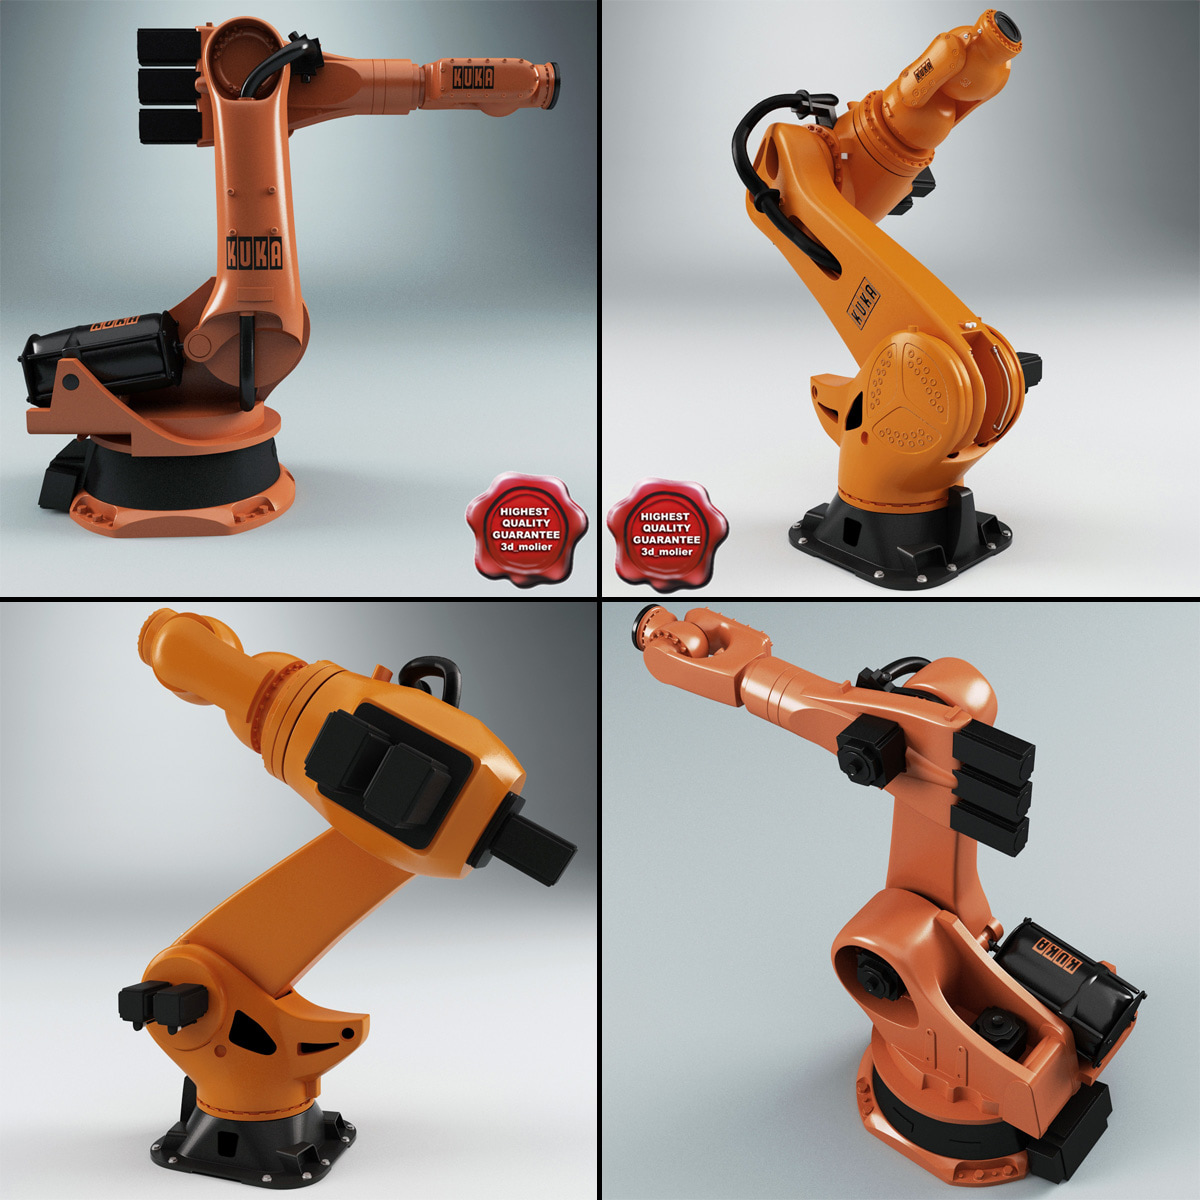 KUKA_Robots_Collection_00.jpg